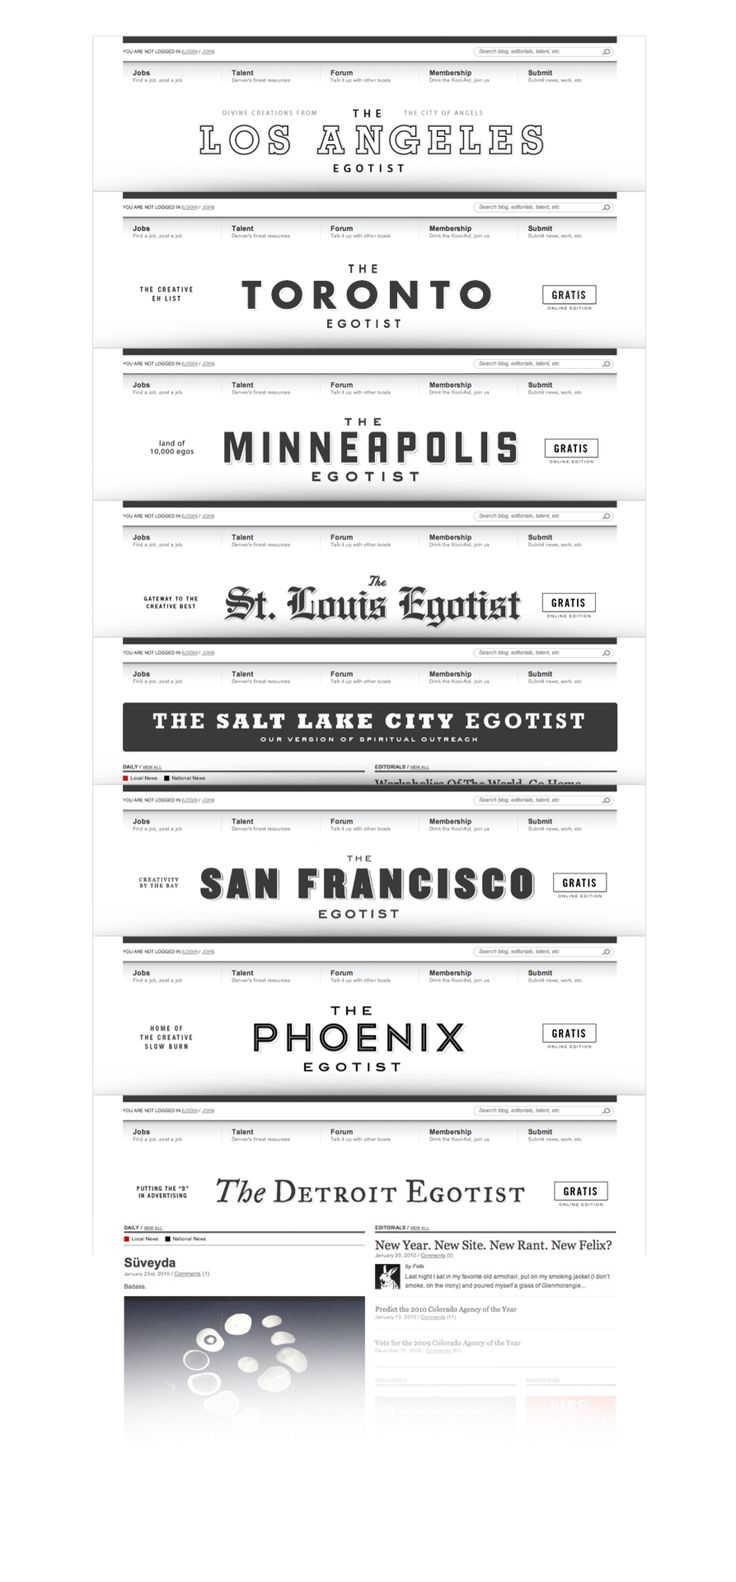 218 best newspaper images on Pinterest   Page layout, Newspaper ...